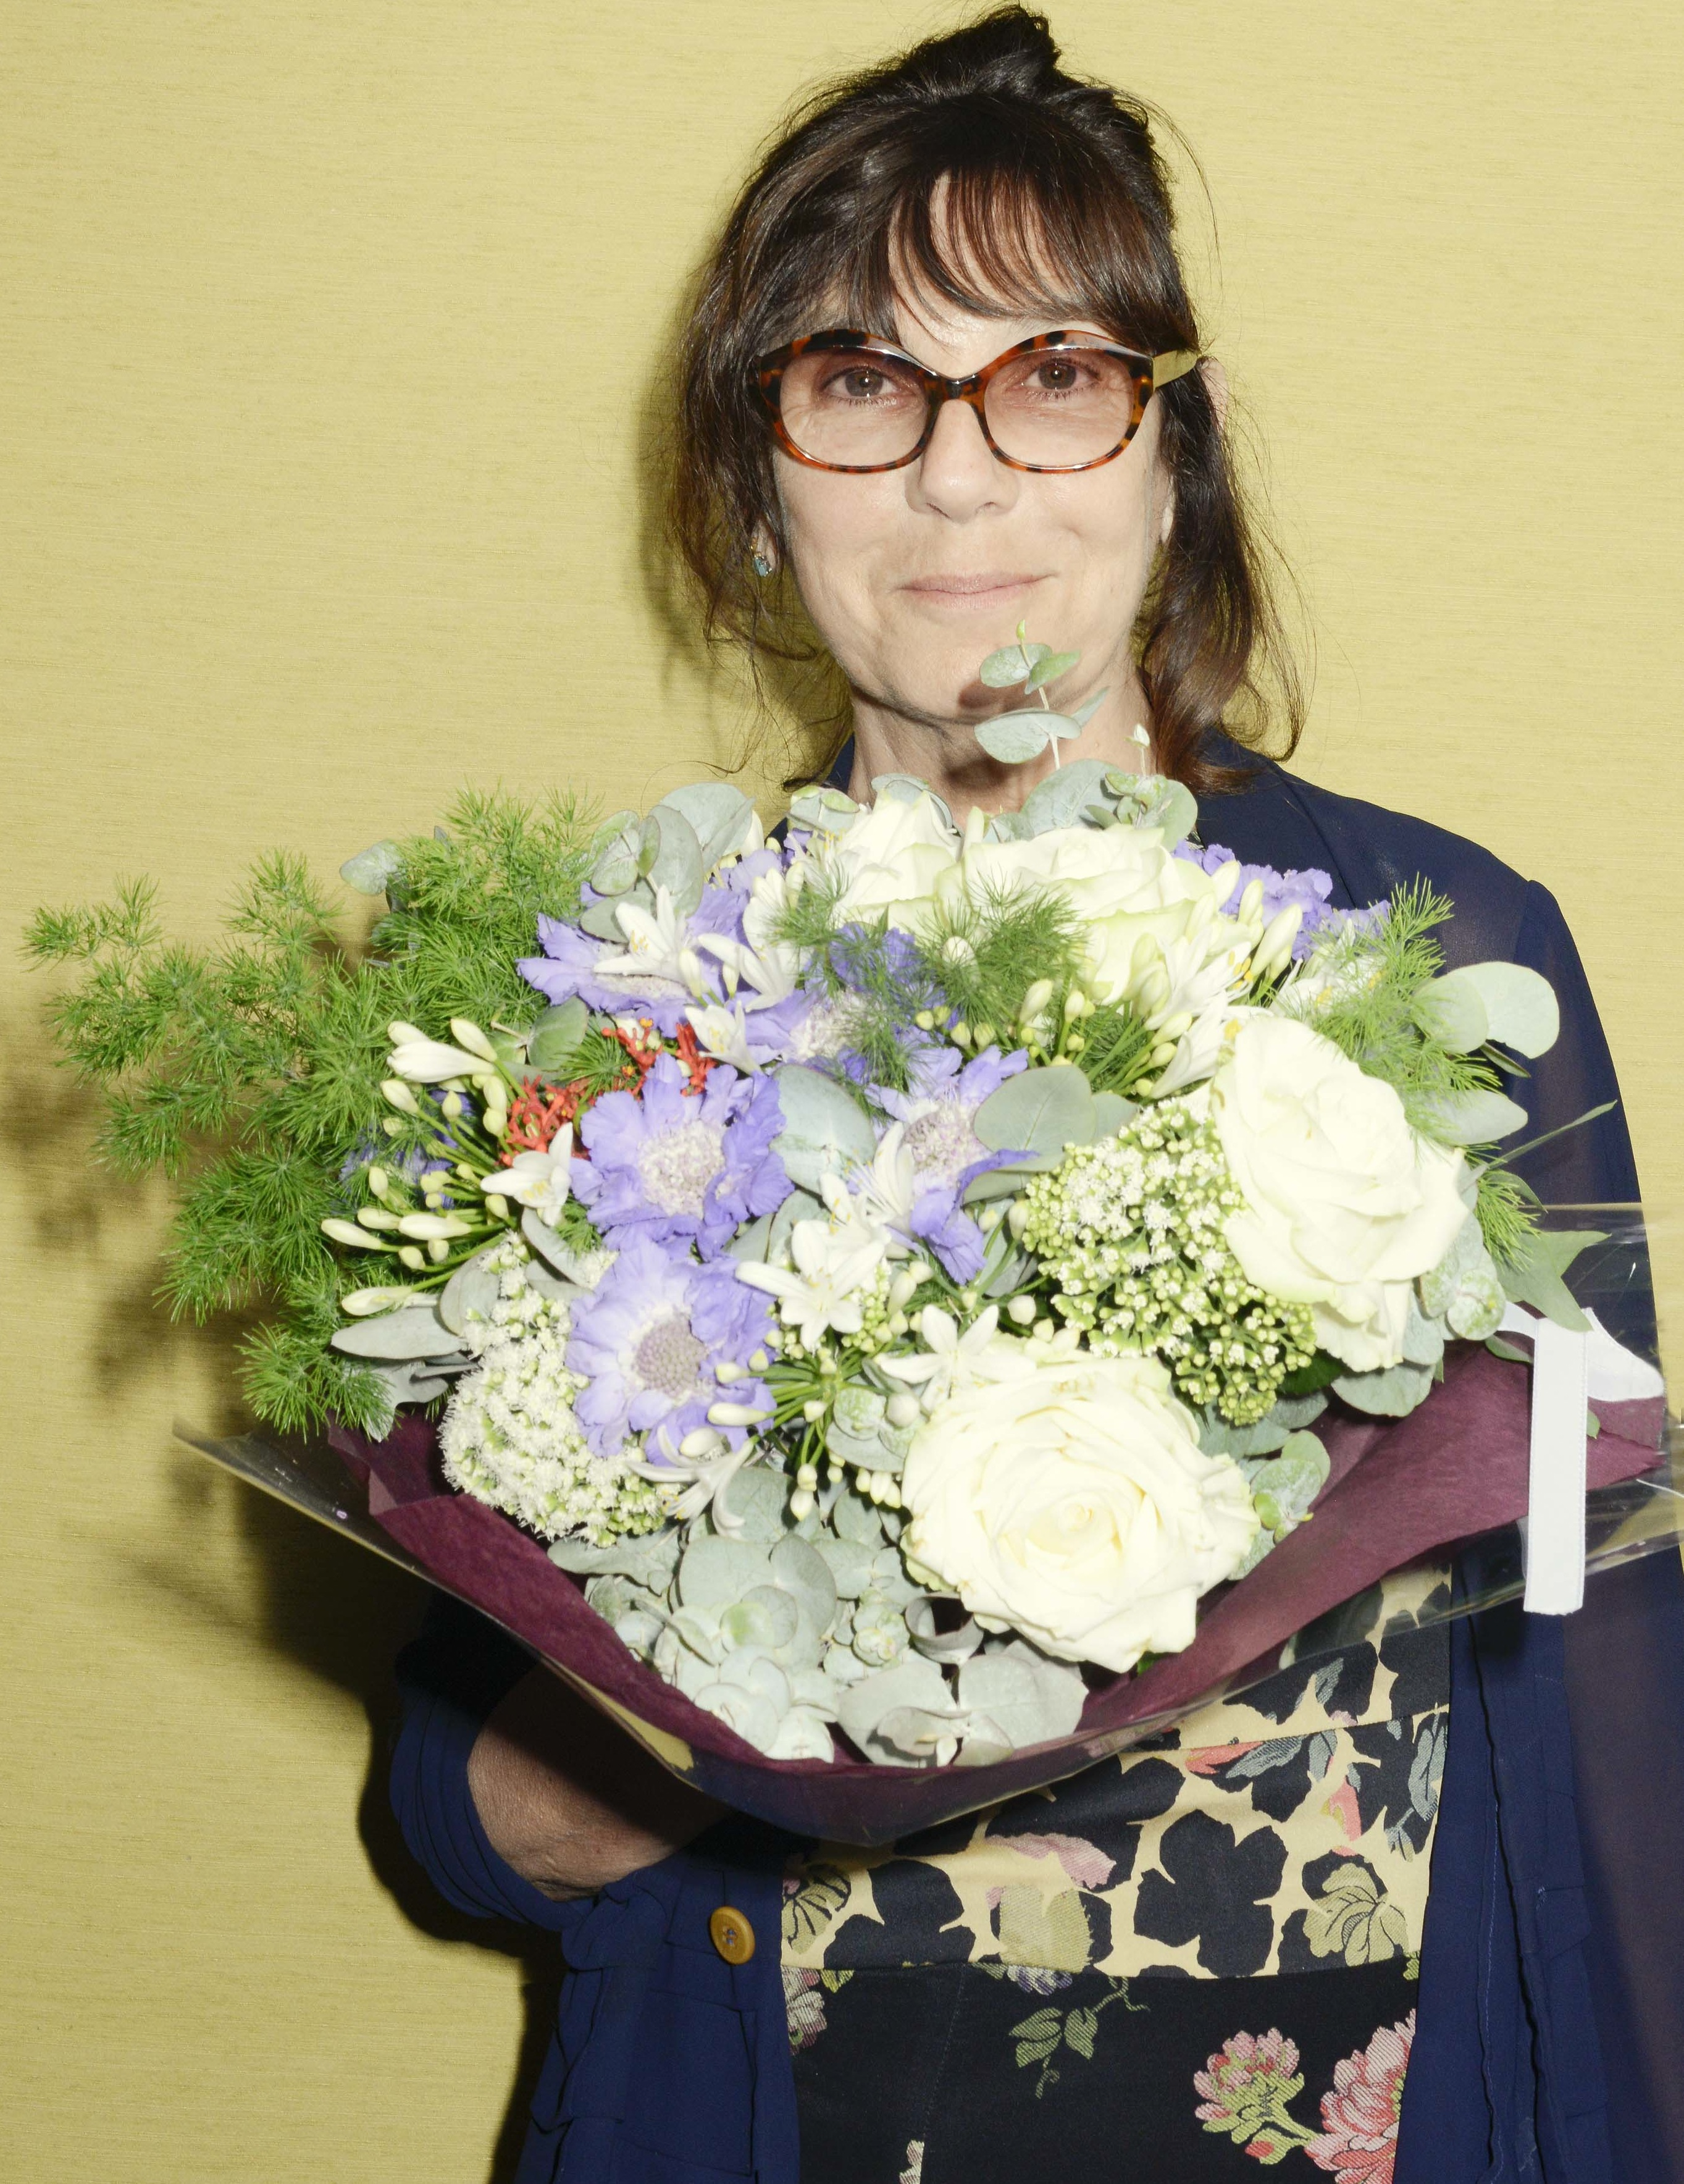 Image of Sophie Calle from Wikidata